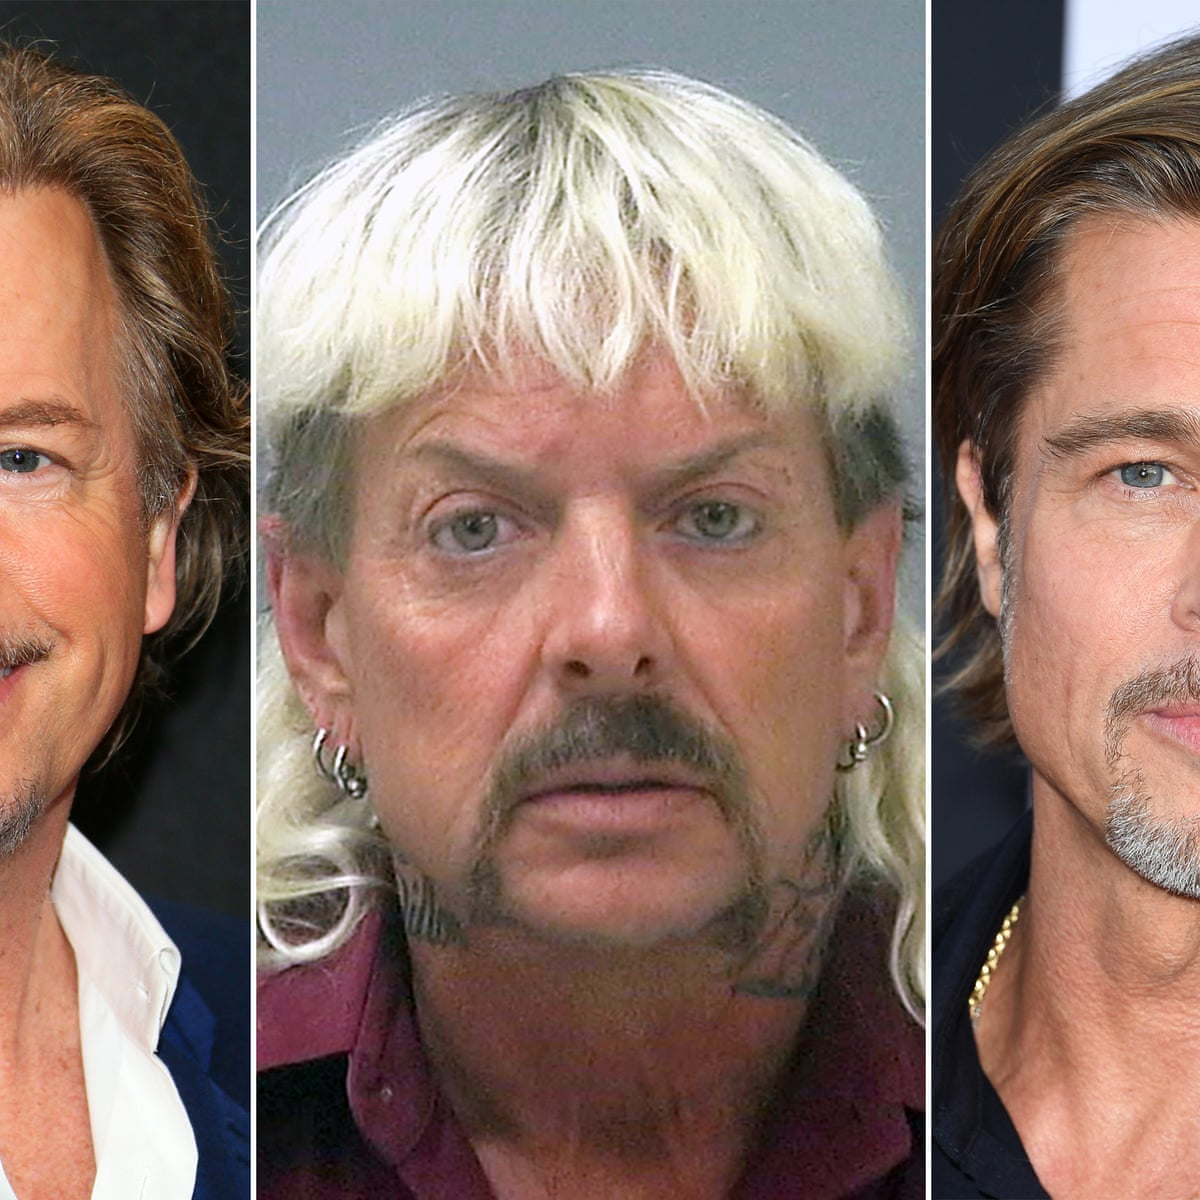 Tiger King S Joe Exotic Suggests Brad Pitt Or David Spade Should Play Him On Screen Film The Guardian Jeff lowe, who now owns greater wynnewood exotic animal park in wynnewood, oklahoma with his wife lauren, claims netflix only showed one percent of joe's crimes and shady business deals in the. tiger king s joe exotic suggests brad